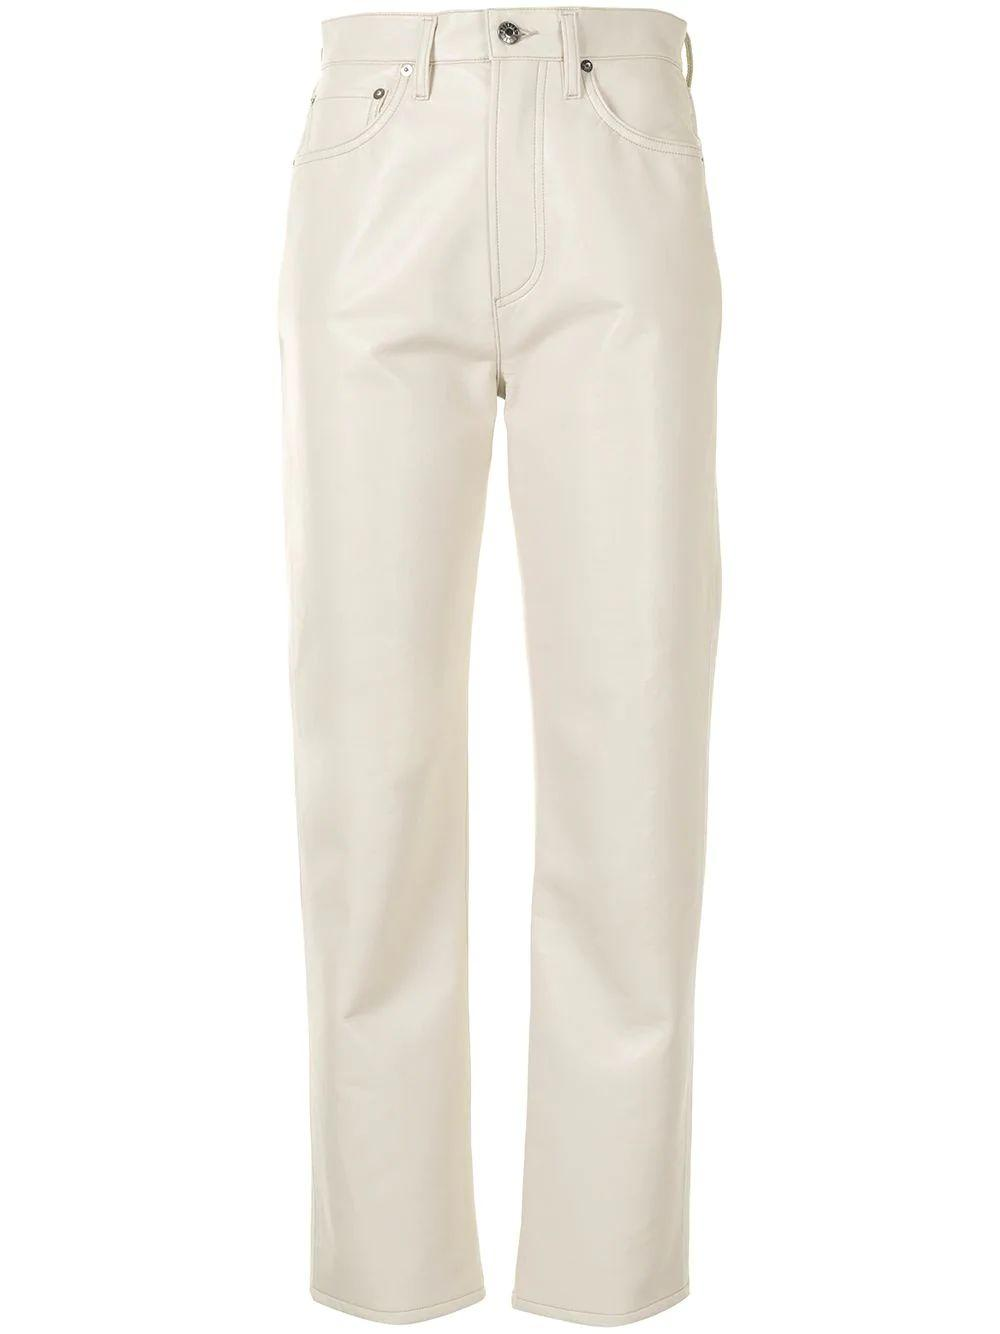 Recycled Leather 90s Pinchwaist Pant Item # A164-1285-F21